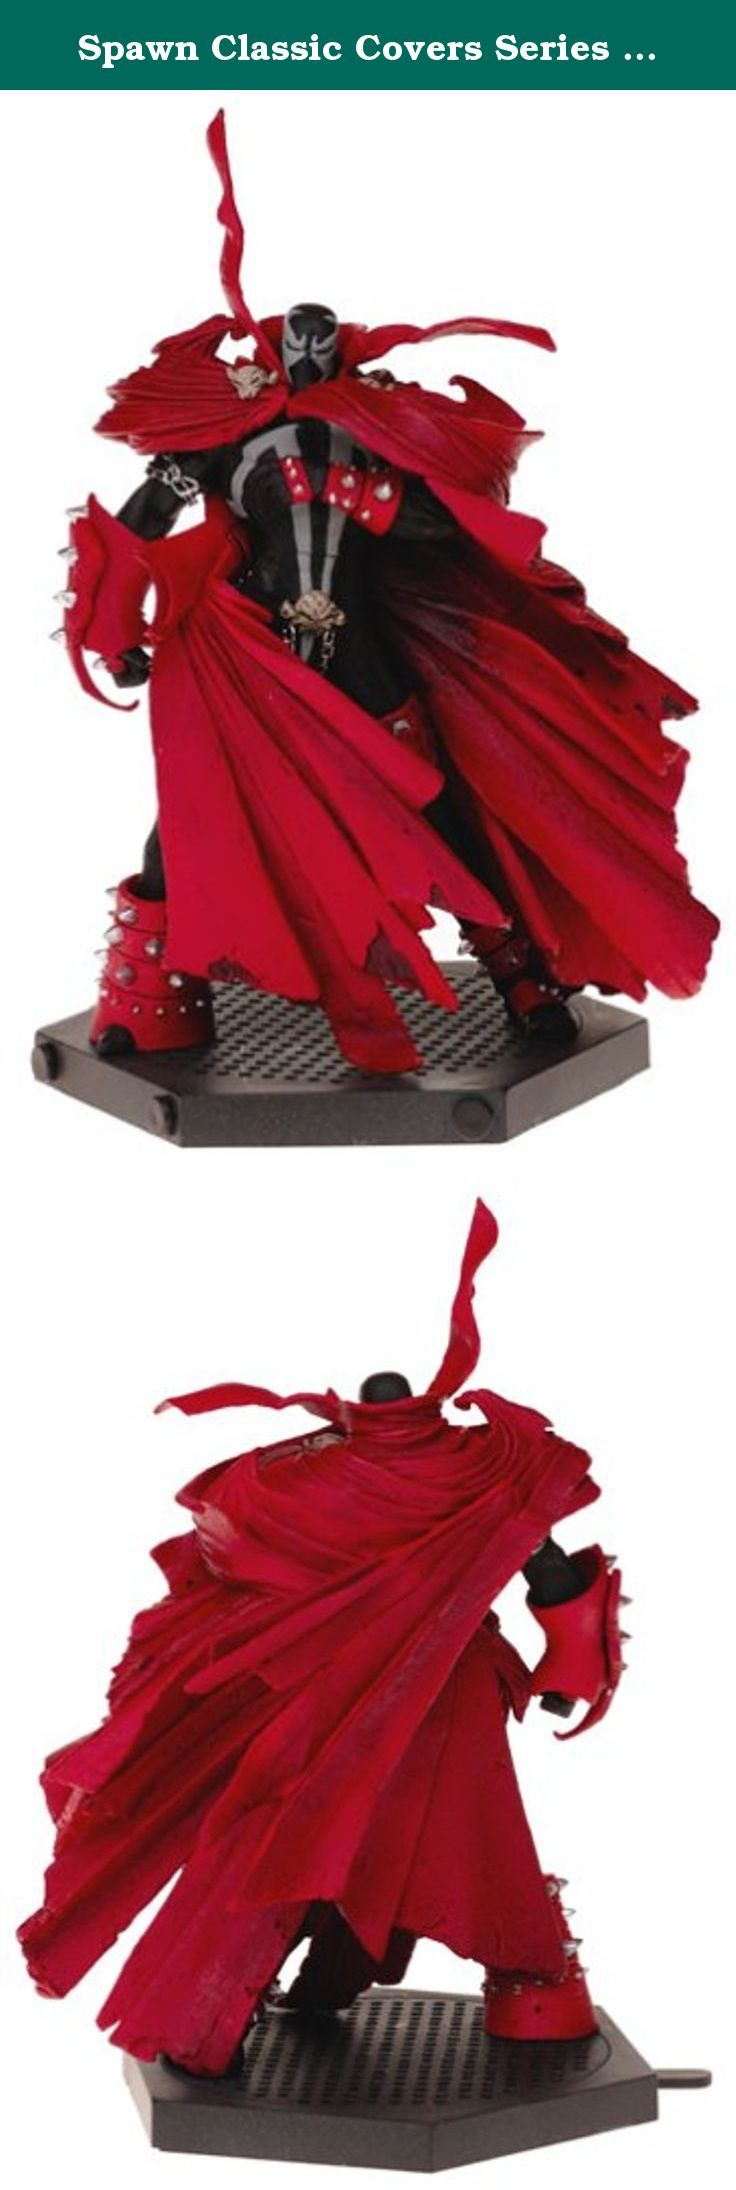 Spawn Classic Covers Series 25 Action Figure Spawn 8 by McFarlane Toys by Unknown. Spawn Classic Cover Series #25 takes up where Series #24 left off, expanding on the theme of comic book artwork as action figure. While the initial foray stuck with the core Al Simmons Hellspawn, Series #25 features other popular characters from the Spawn mythos. The Spawn 8 figure measures 7 tall and comes with a mini comic book cover and stand.